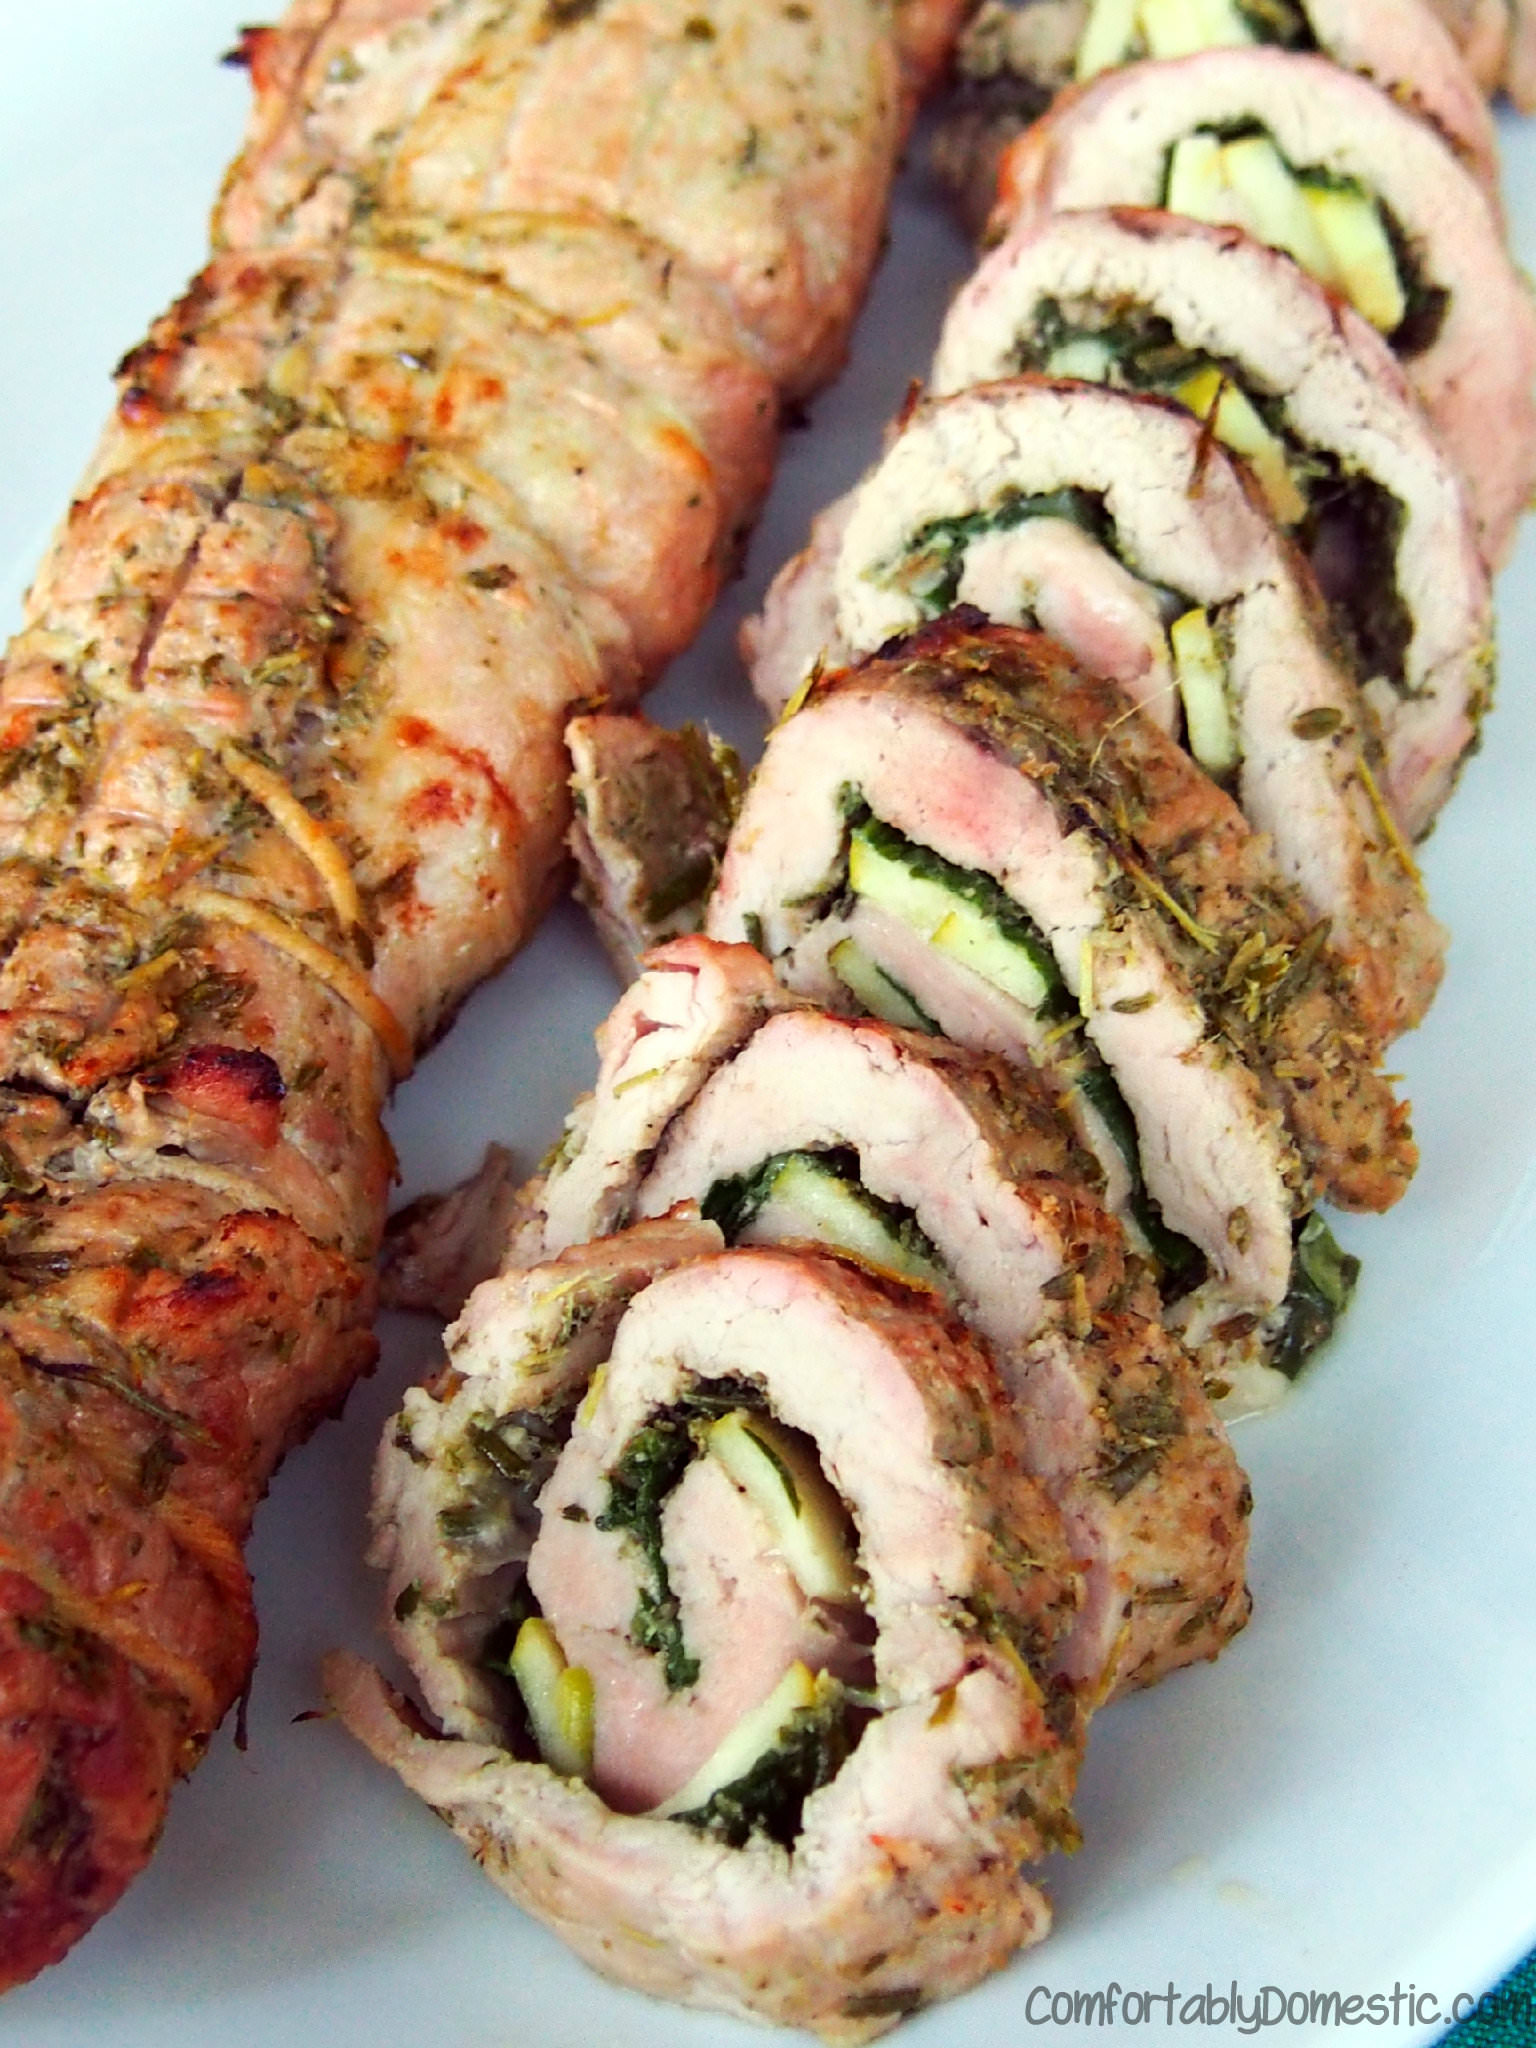 Rosemary Pesto Rolled Pork Tenderloin with Spinach, Apple, and Gouda | ComfortablyDomestic.com